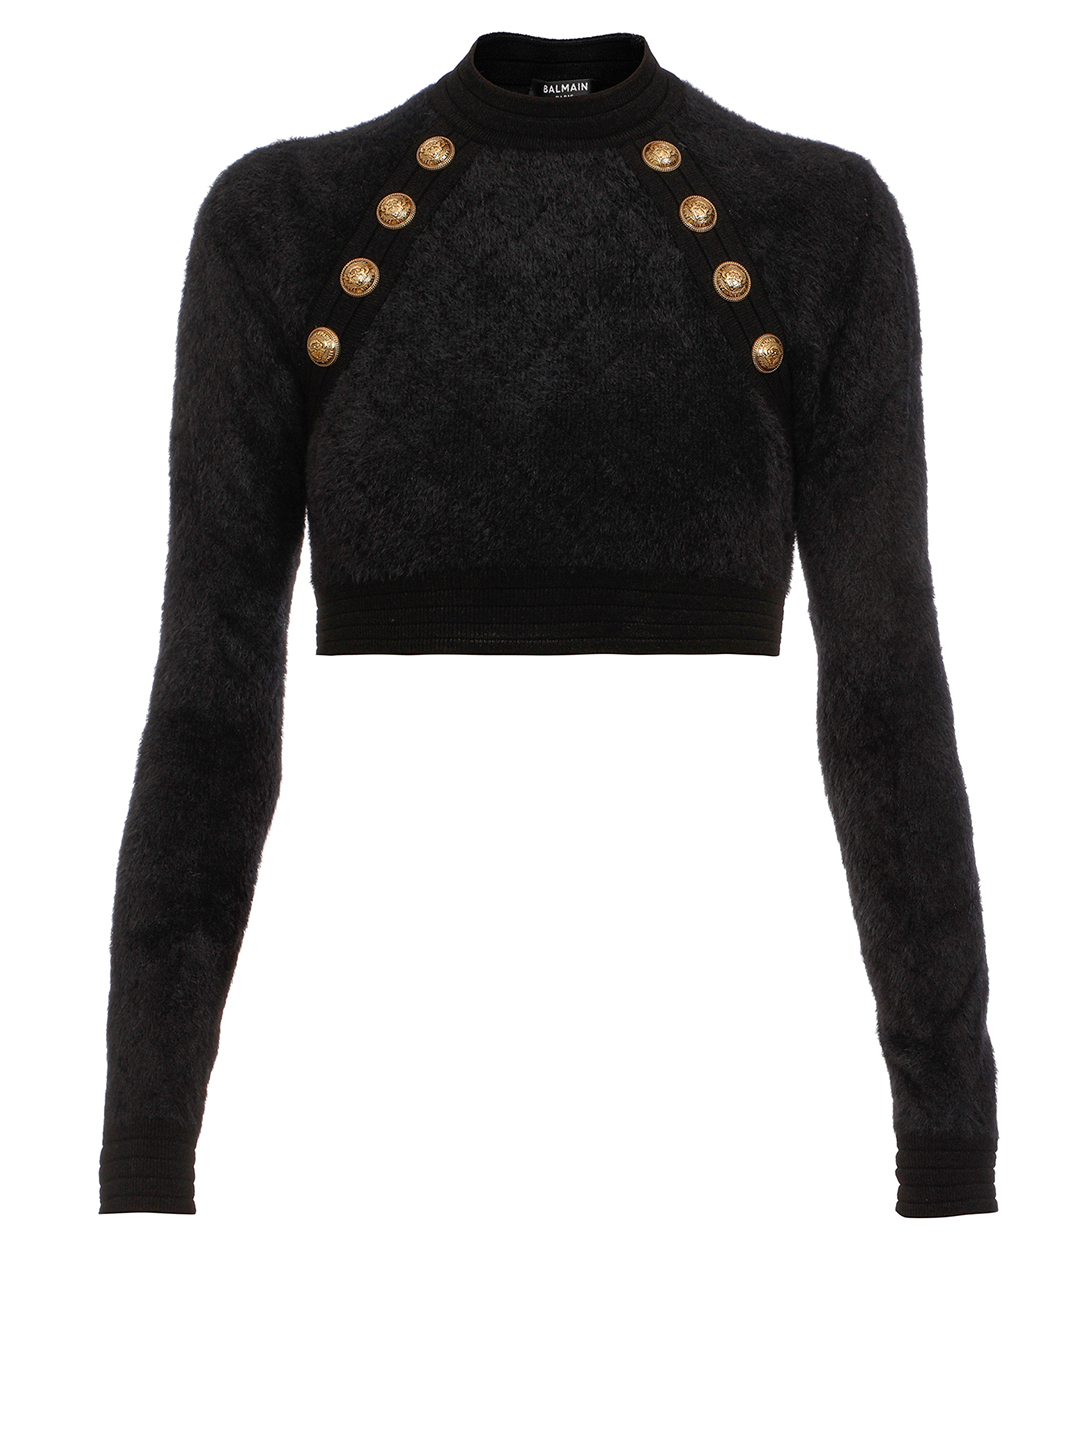 BALMAIN Fluffy Cropped Sweater Women's Black